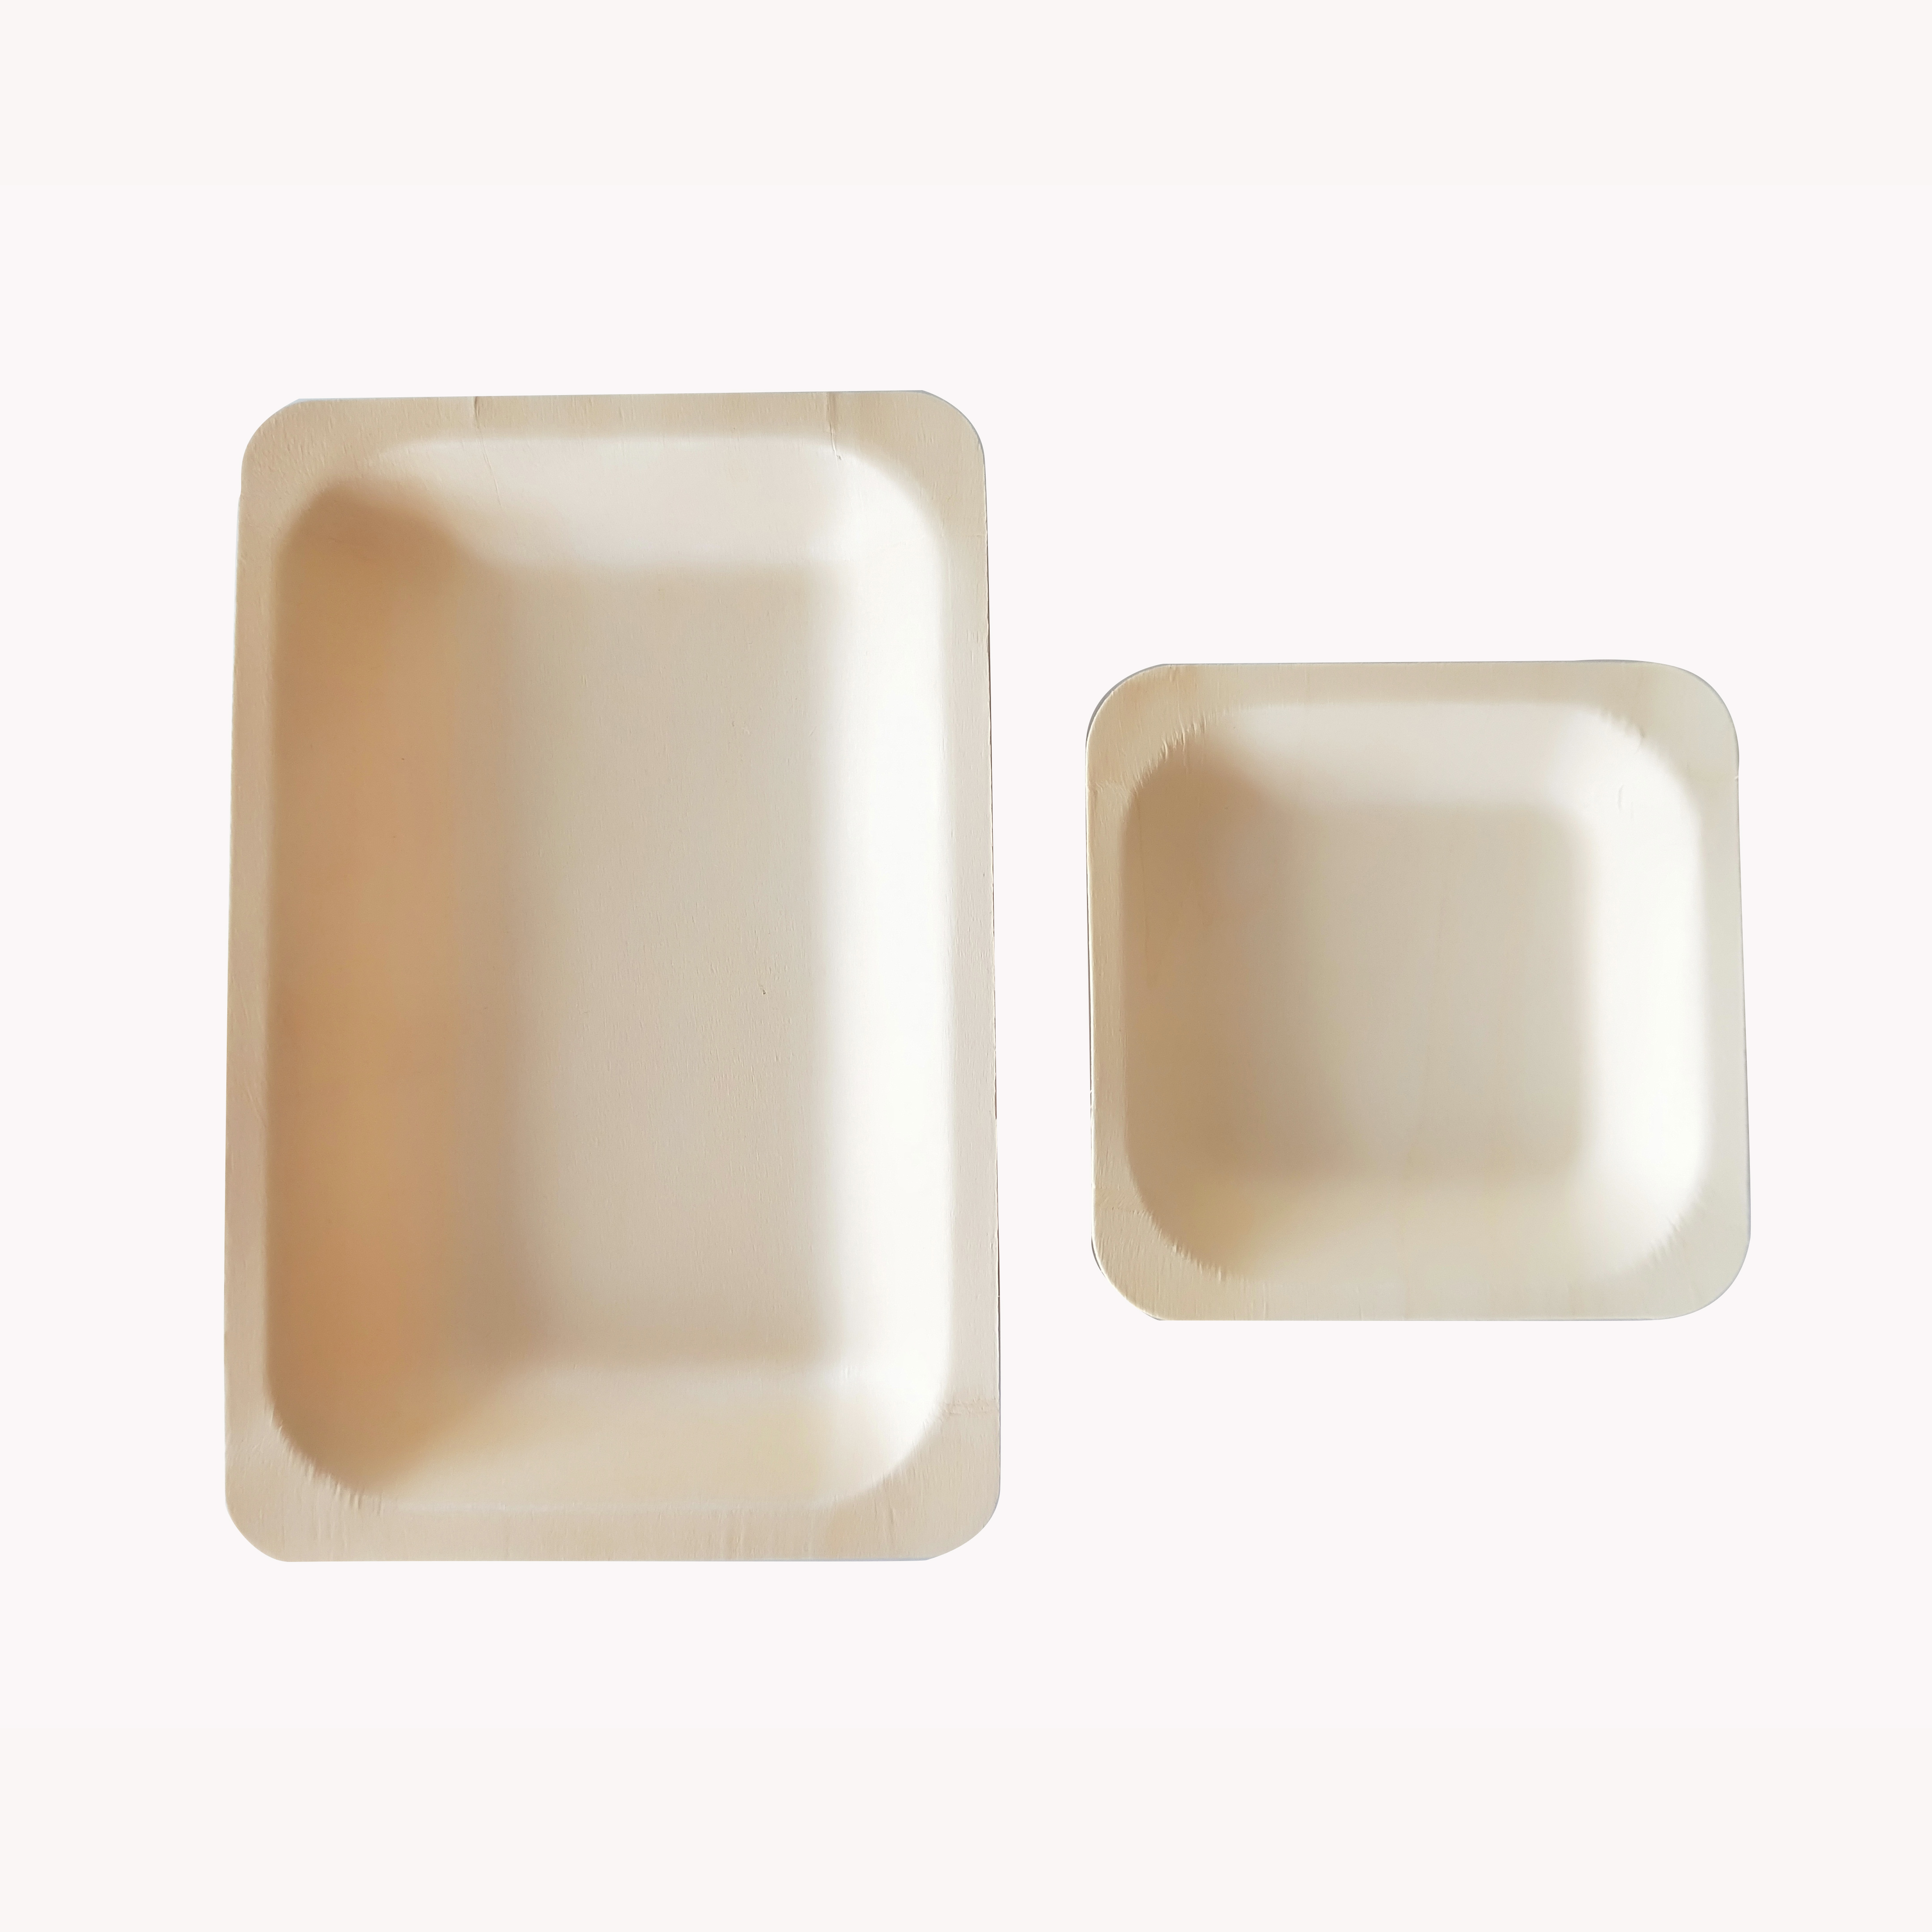 New Biodegradable Snacks Sugar Steak plate wooden Disposable Fast Food Plates